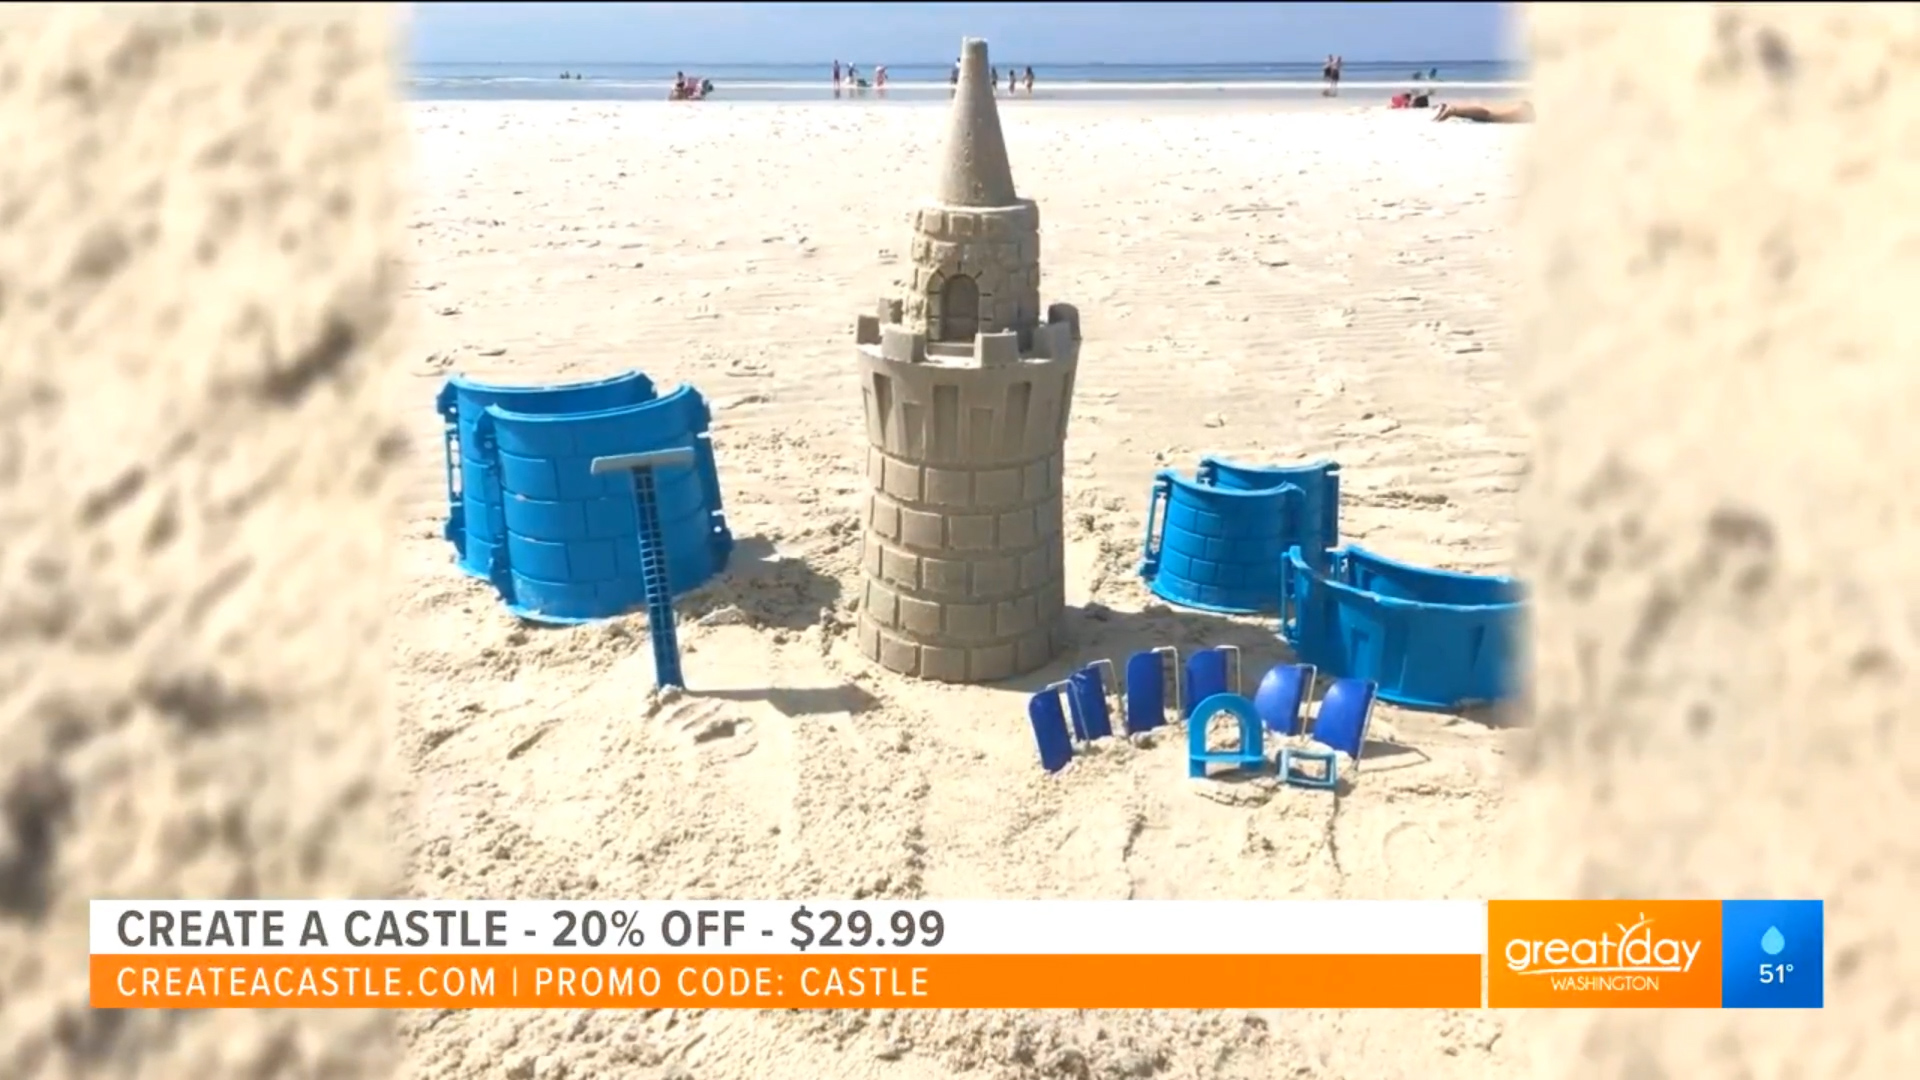 CREATE A CASTLE - Starting at $29.99Shop Now